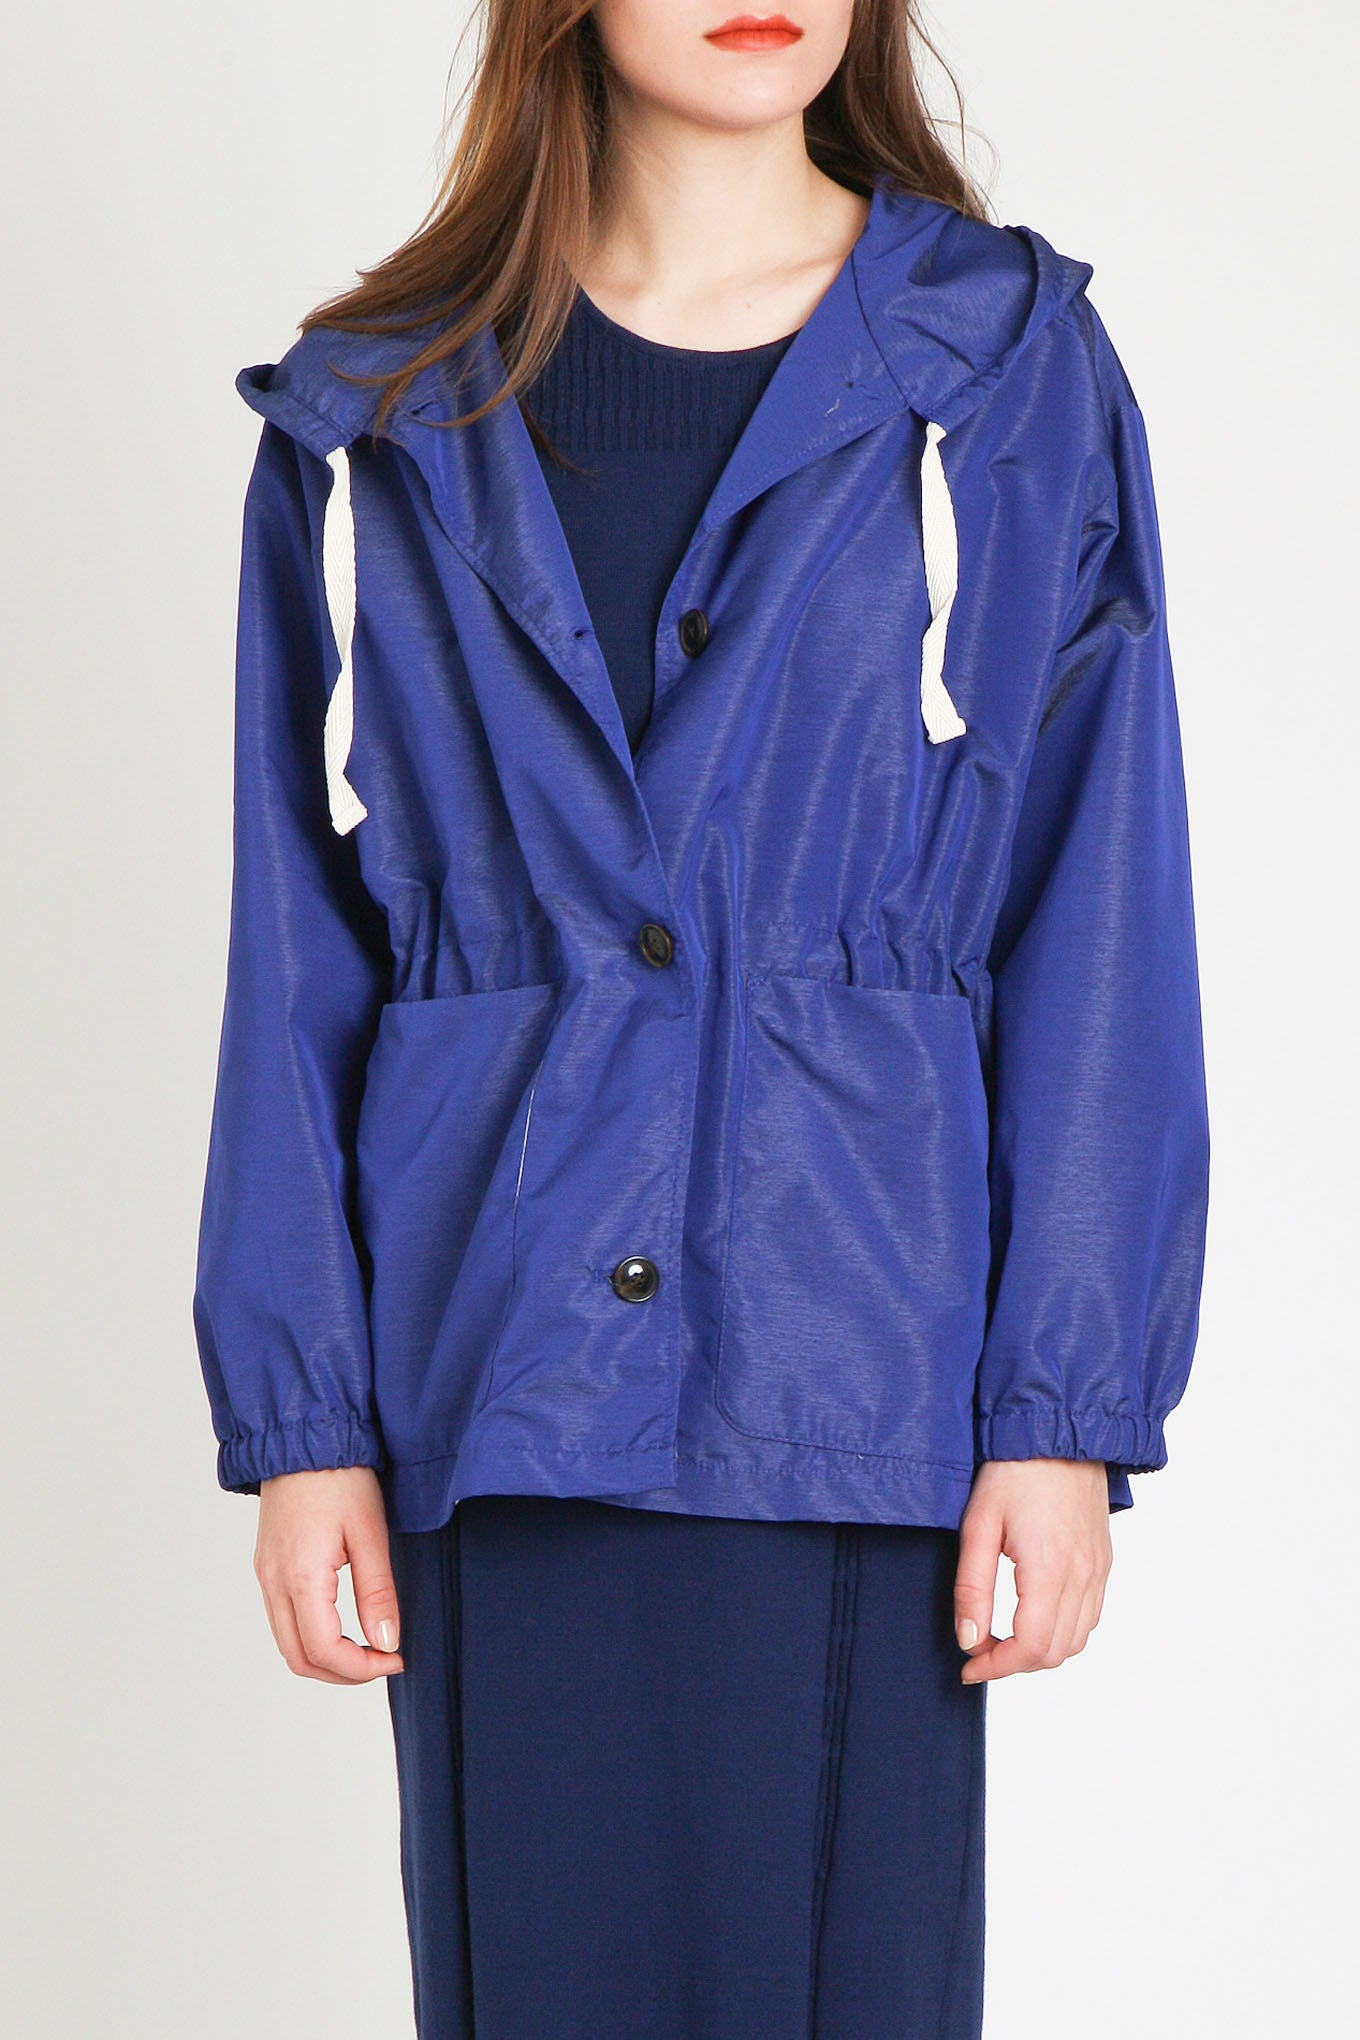 Bellerose / Spring Windbreaker Jacket